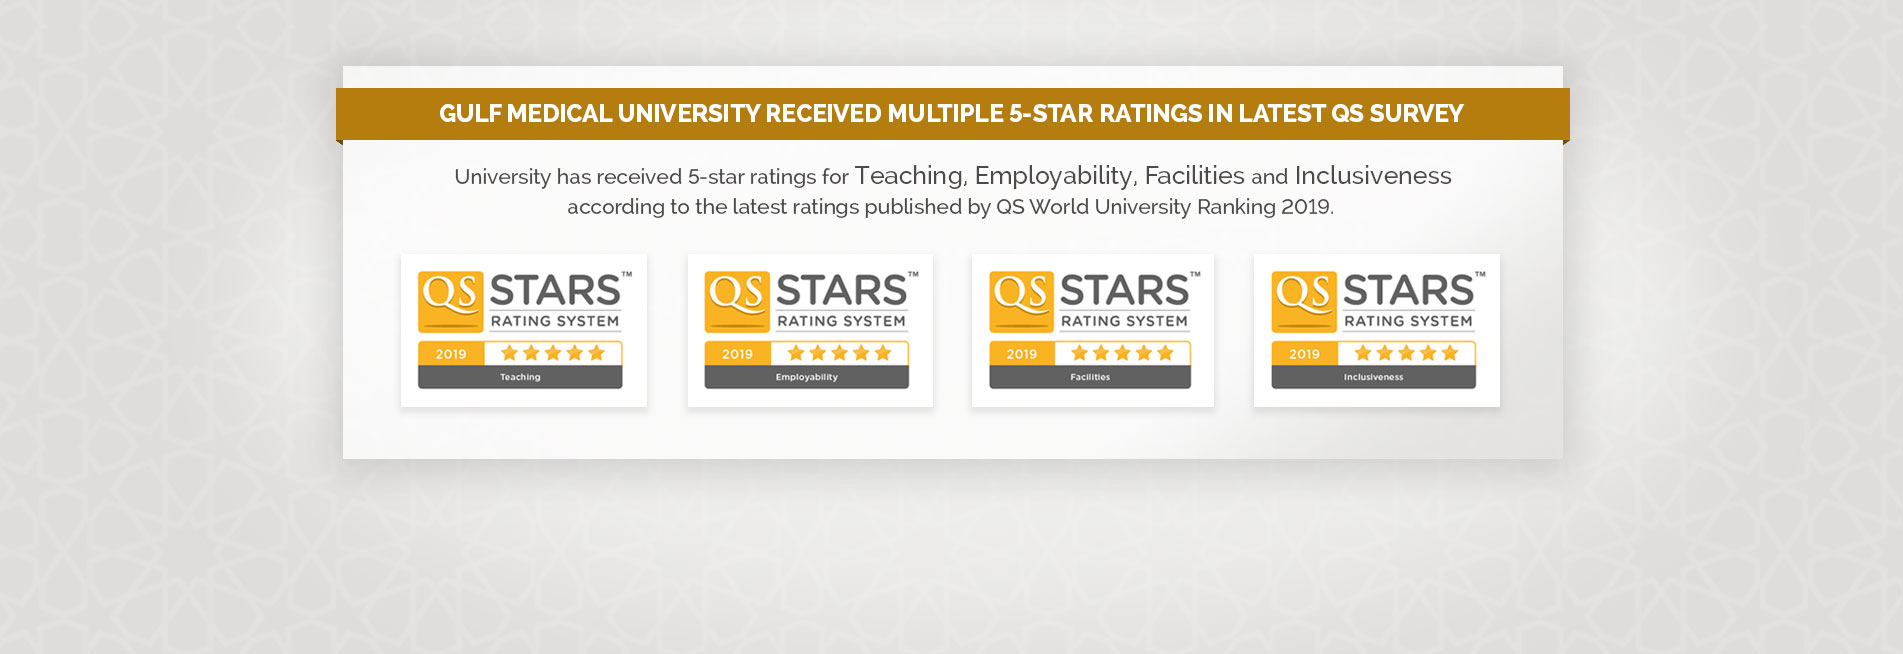 GMU Recived Multiple 5-Star Ratings in Latest QS Survey